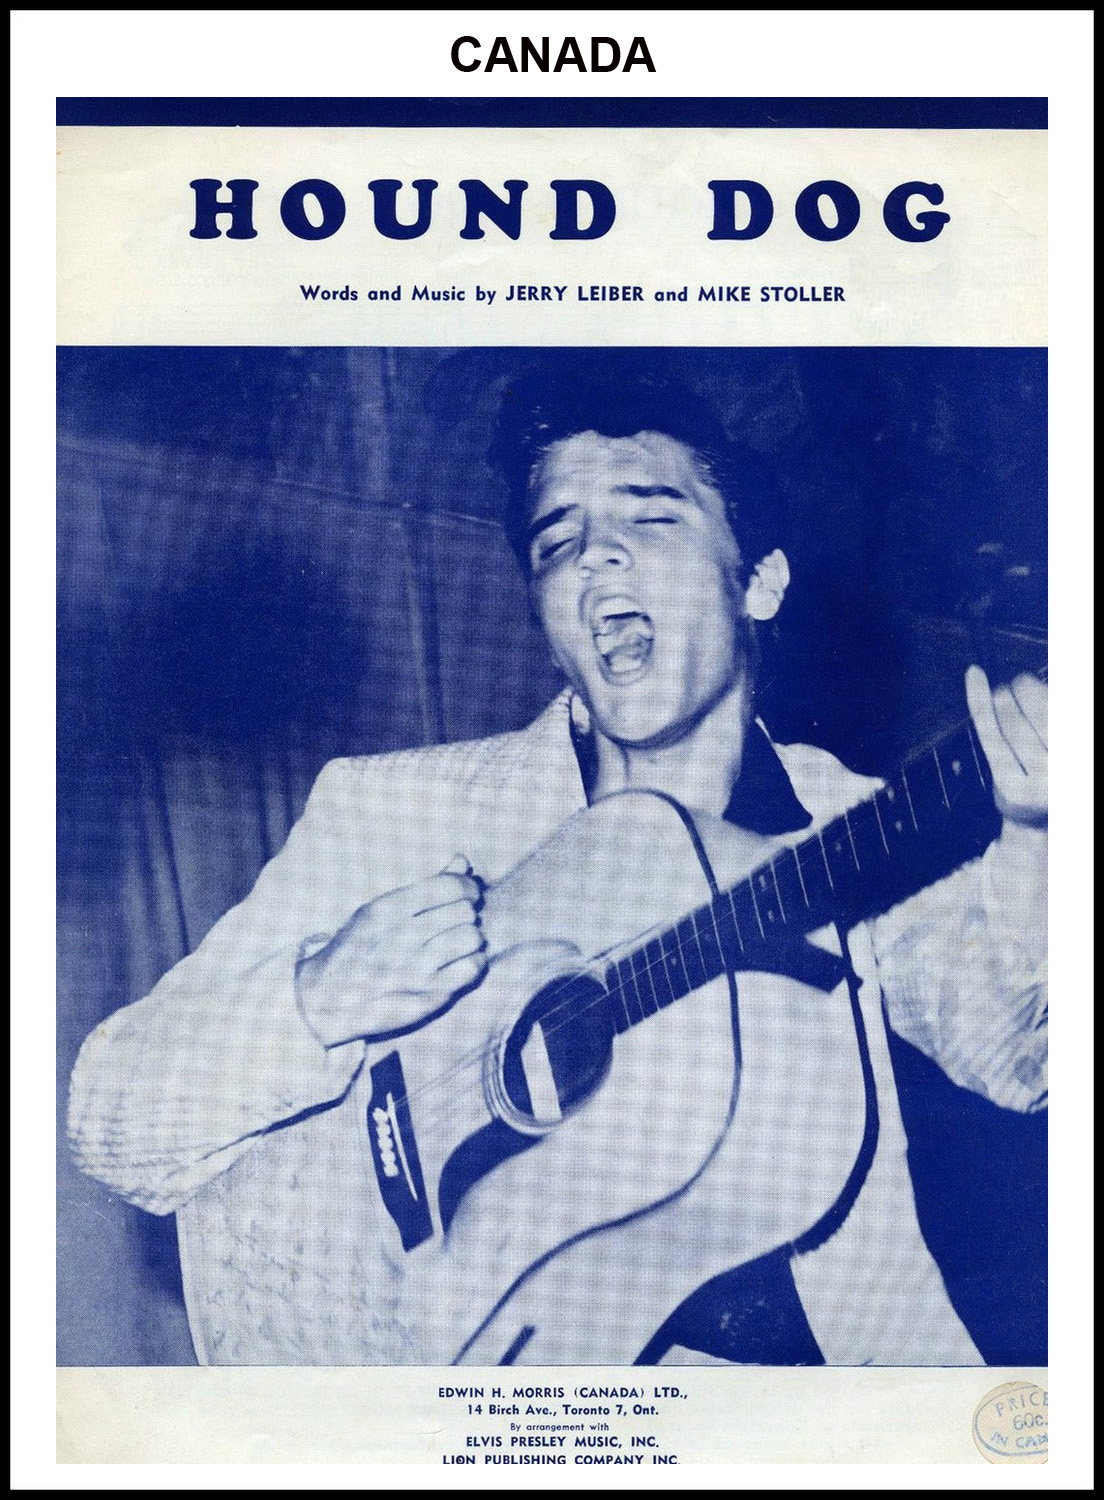 1956 - Hound Dog (Canada) (CHRIS GILES COLLECTION)